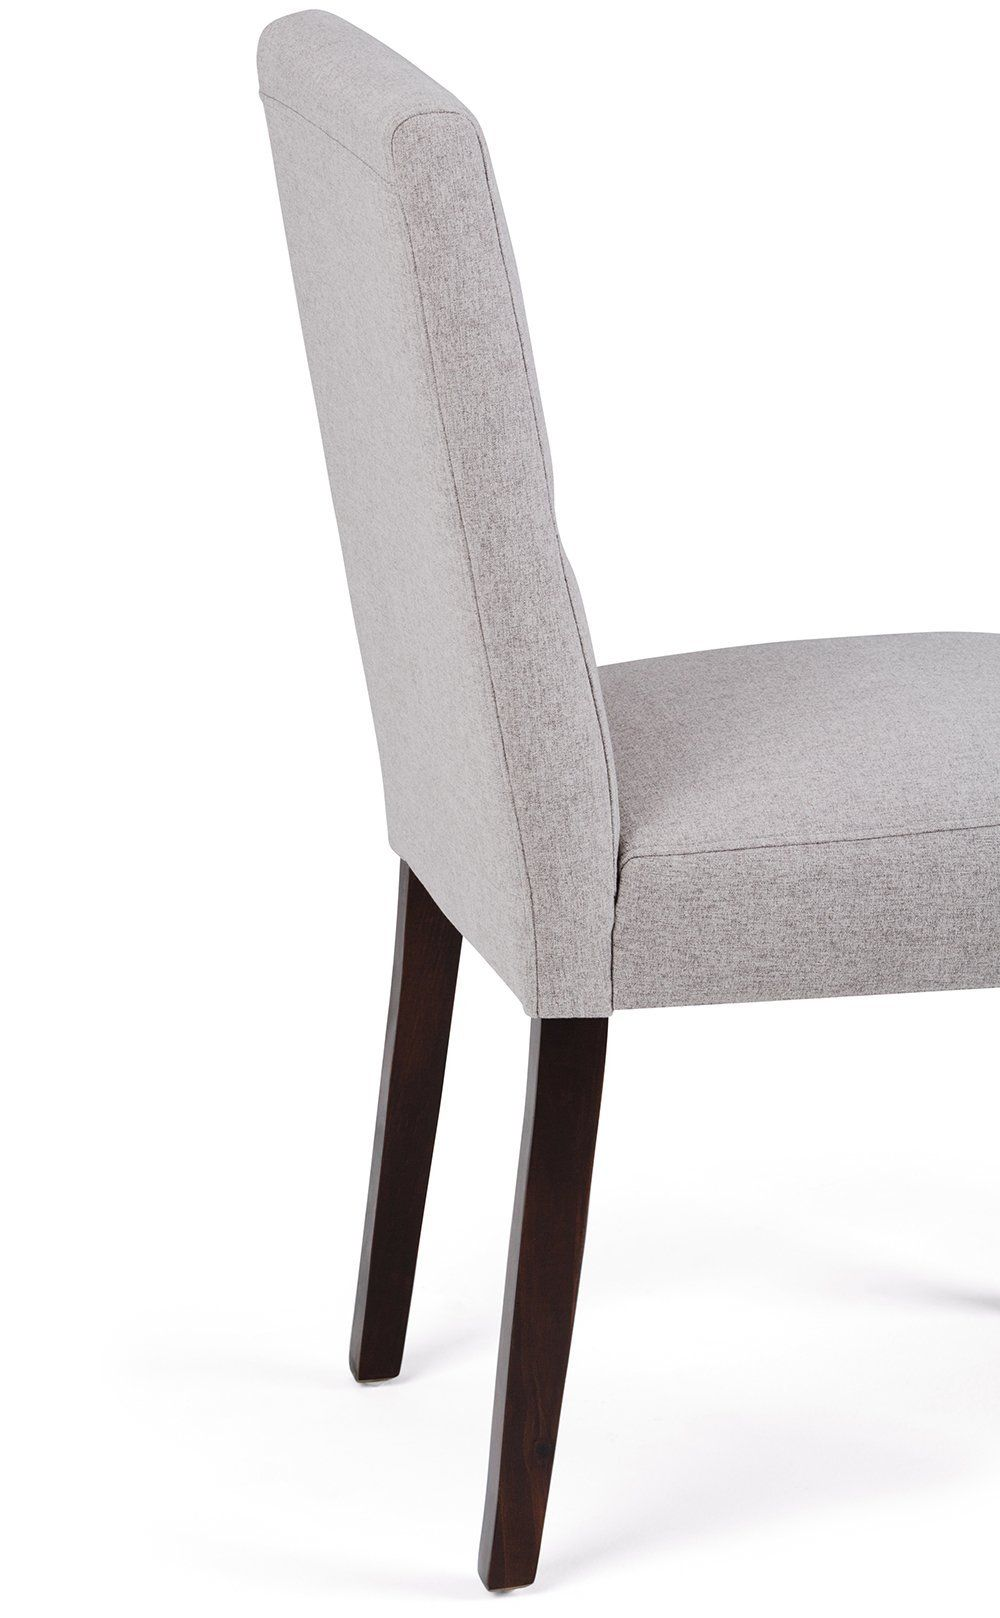 549dc606a4 You need a stylish and affordable dining chair to match your dining table.  The Ashford Dining Chair can help with that. It is a tasteful, well made  seating ...